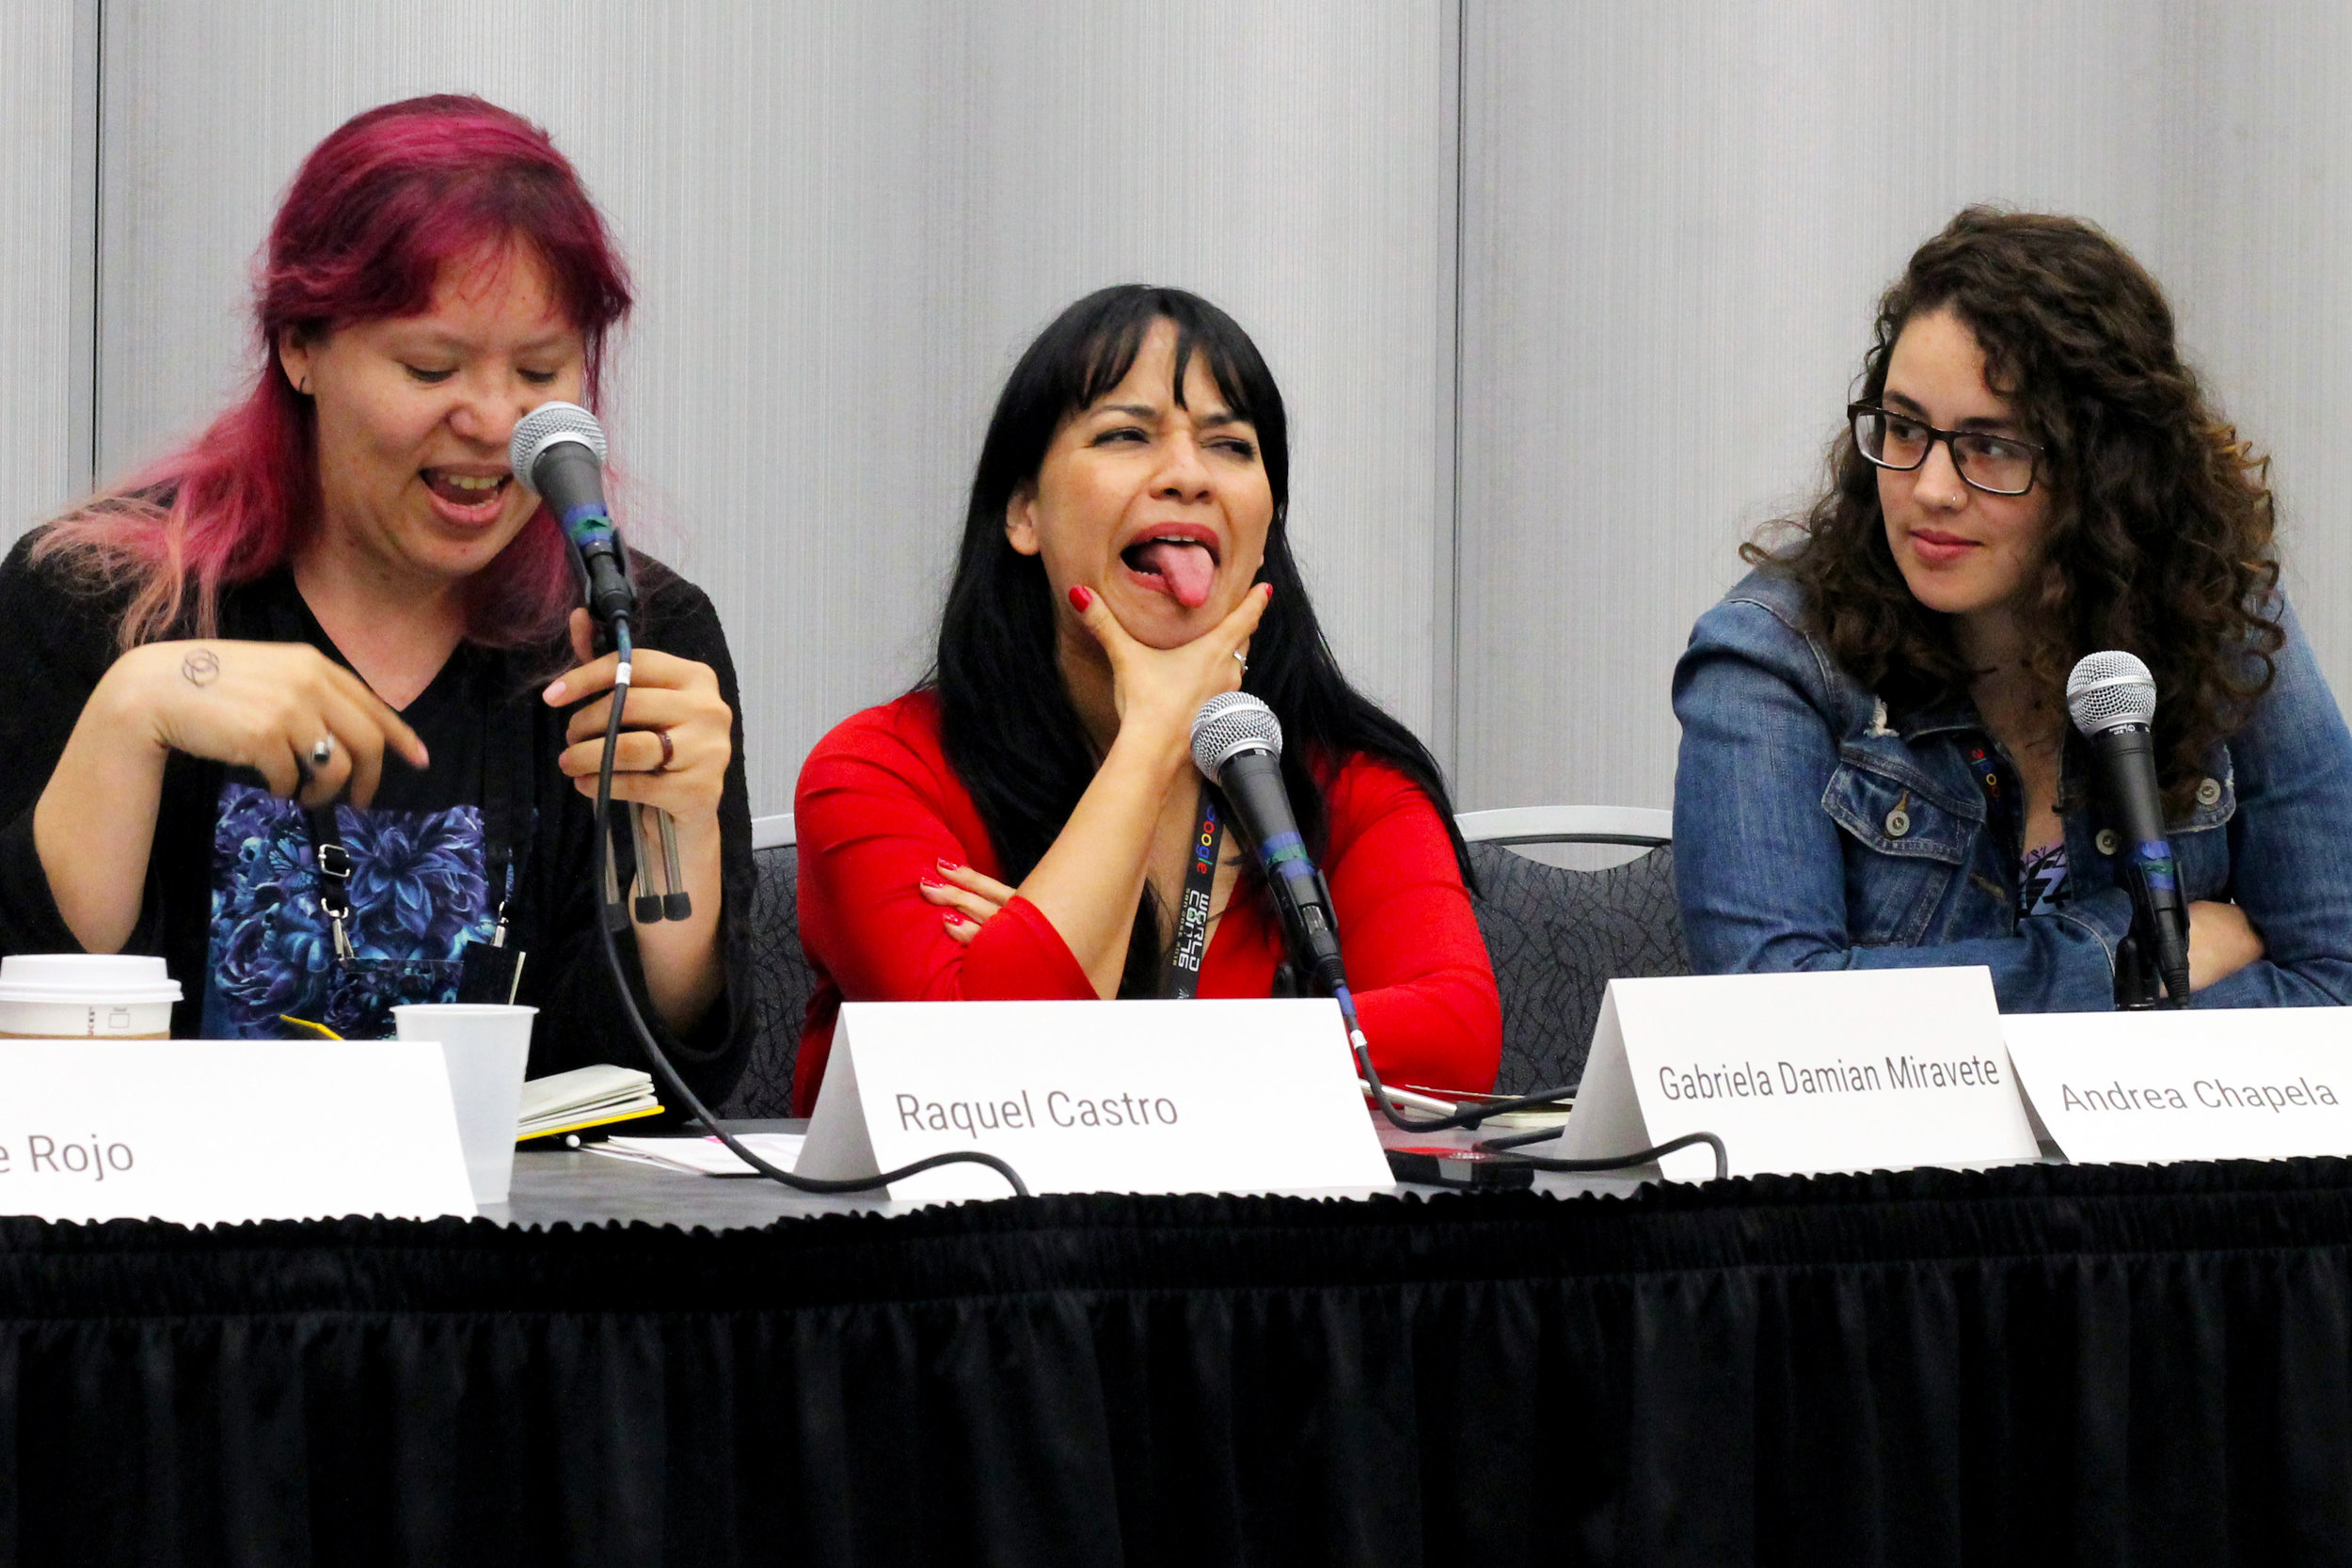 Raquel Castro, Gabriela Damián, and Andrea Chapela on the Mexican Female Horror Writers panel (Sent by Julia Rios, photo by Kateryna Barnes)